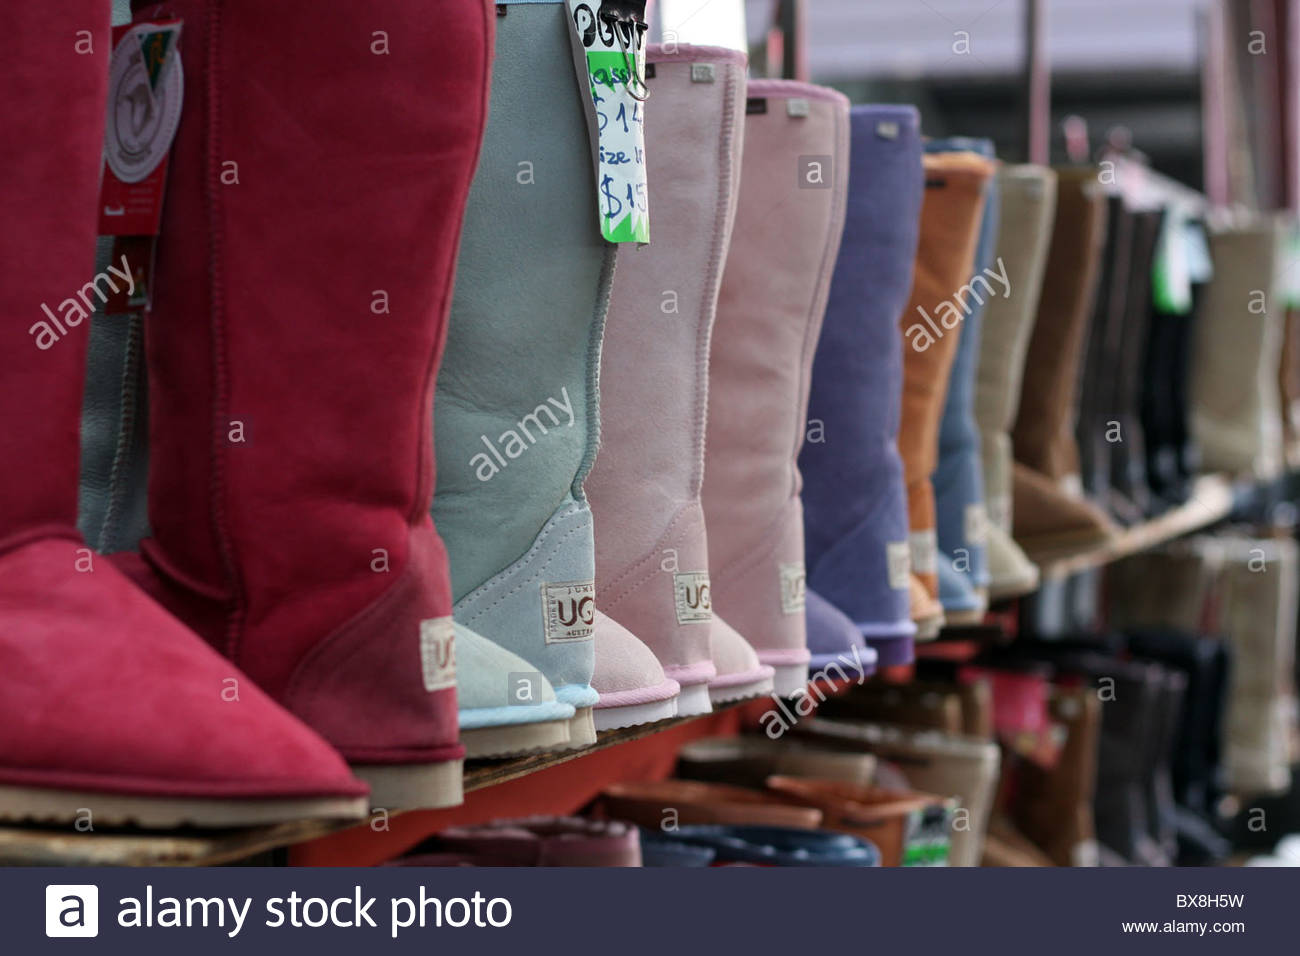 Ugg boots lined up for sale at Melbourne's Queen Victoria Markets.